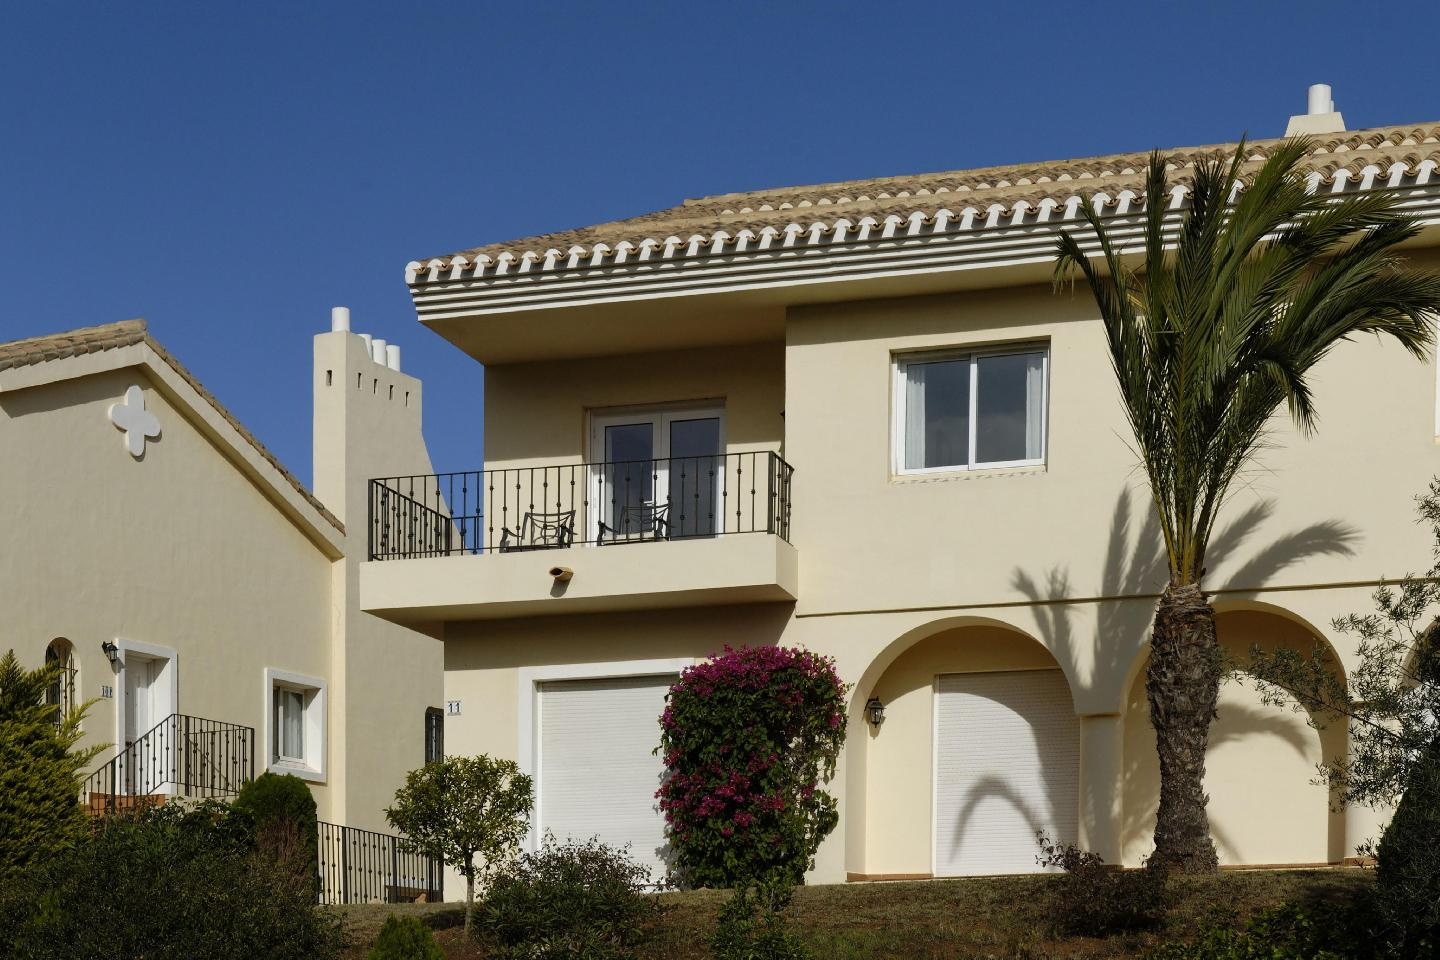 La Manga Club Resort - Los Olivos 417 2 Bedrooms, for rent